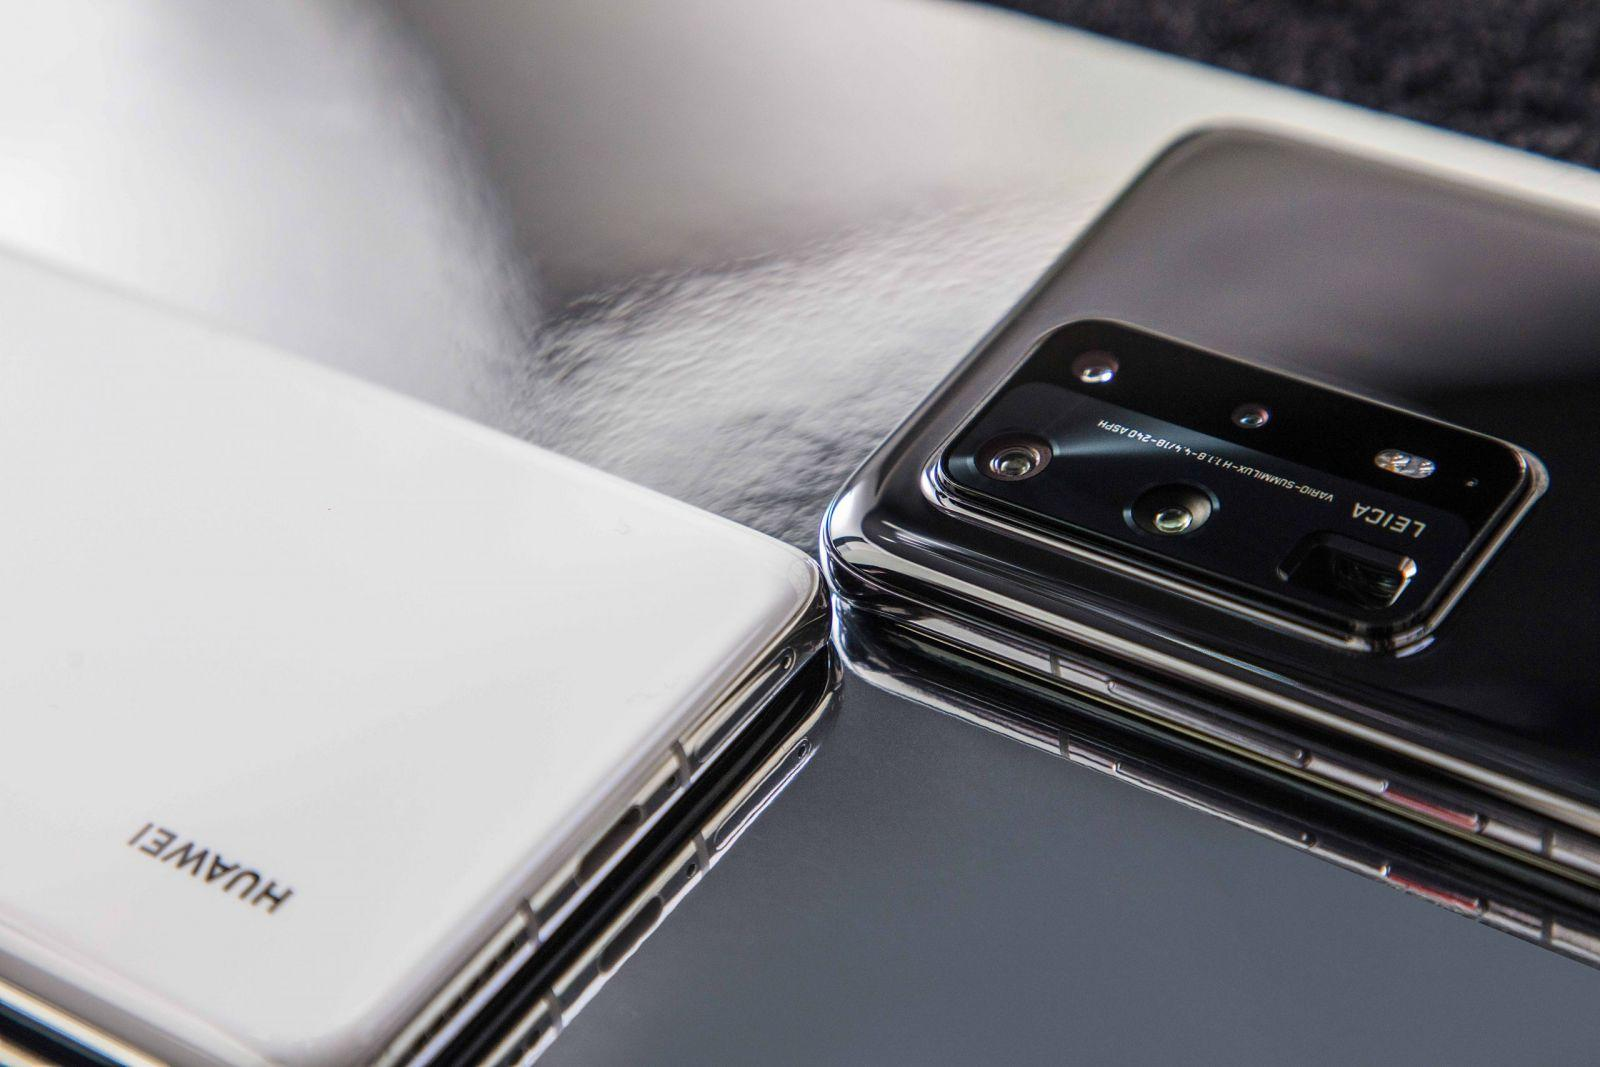 All about the new Huawei P40, P40 Pro and P40 Pro +: features, design, release date All about the new Huawei P40, P40 Pro and P40 Pro +: features, design, release date